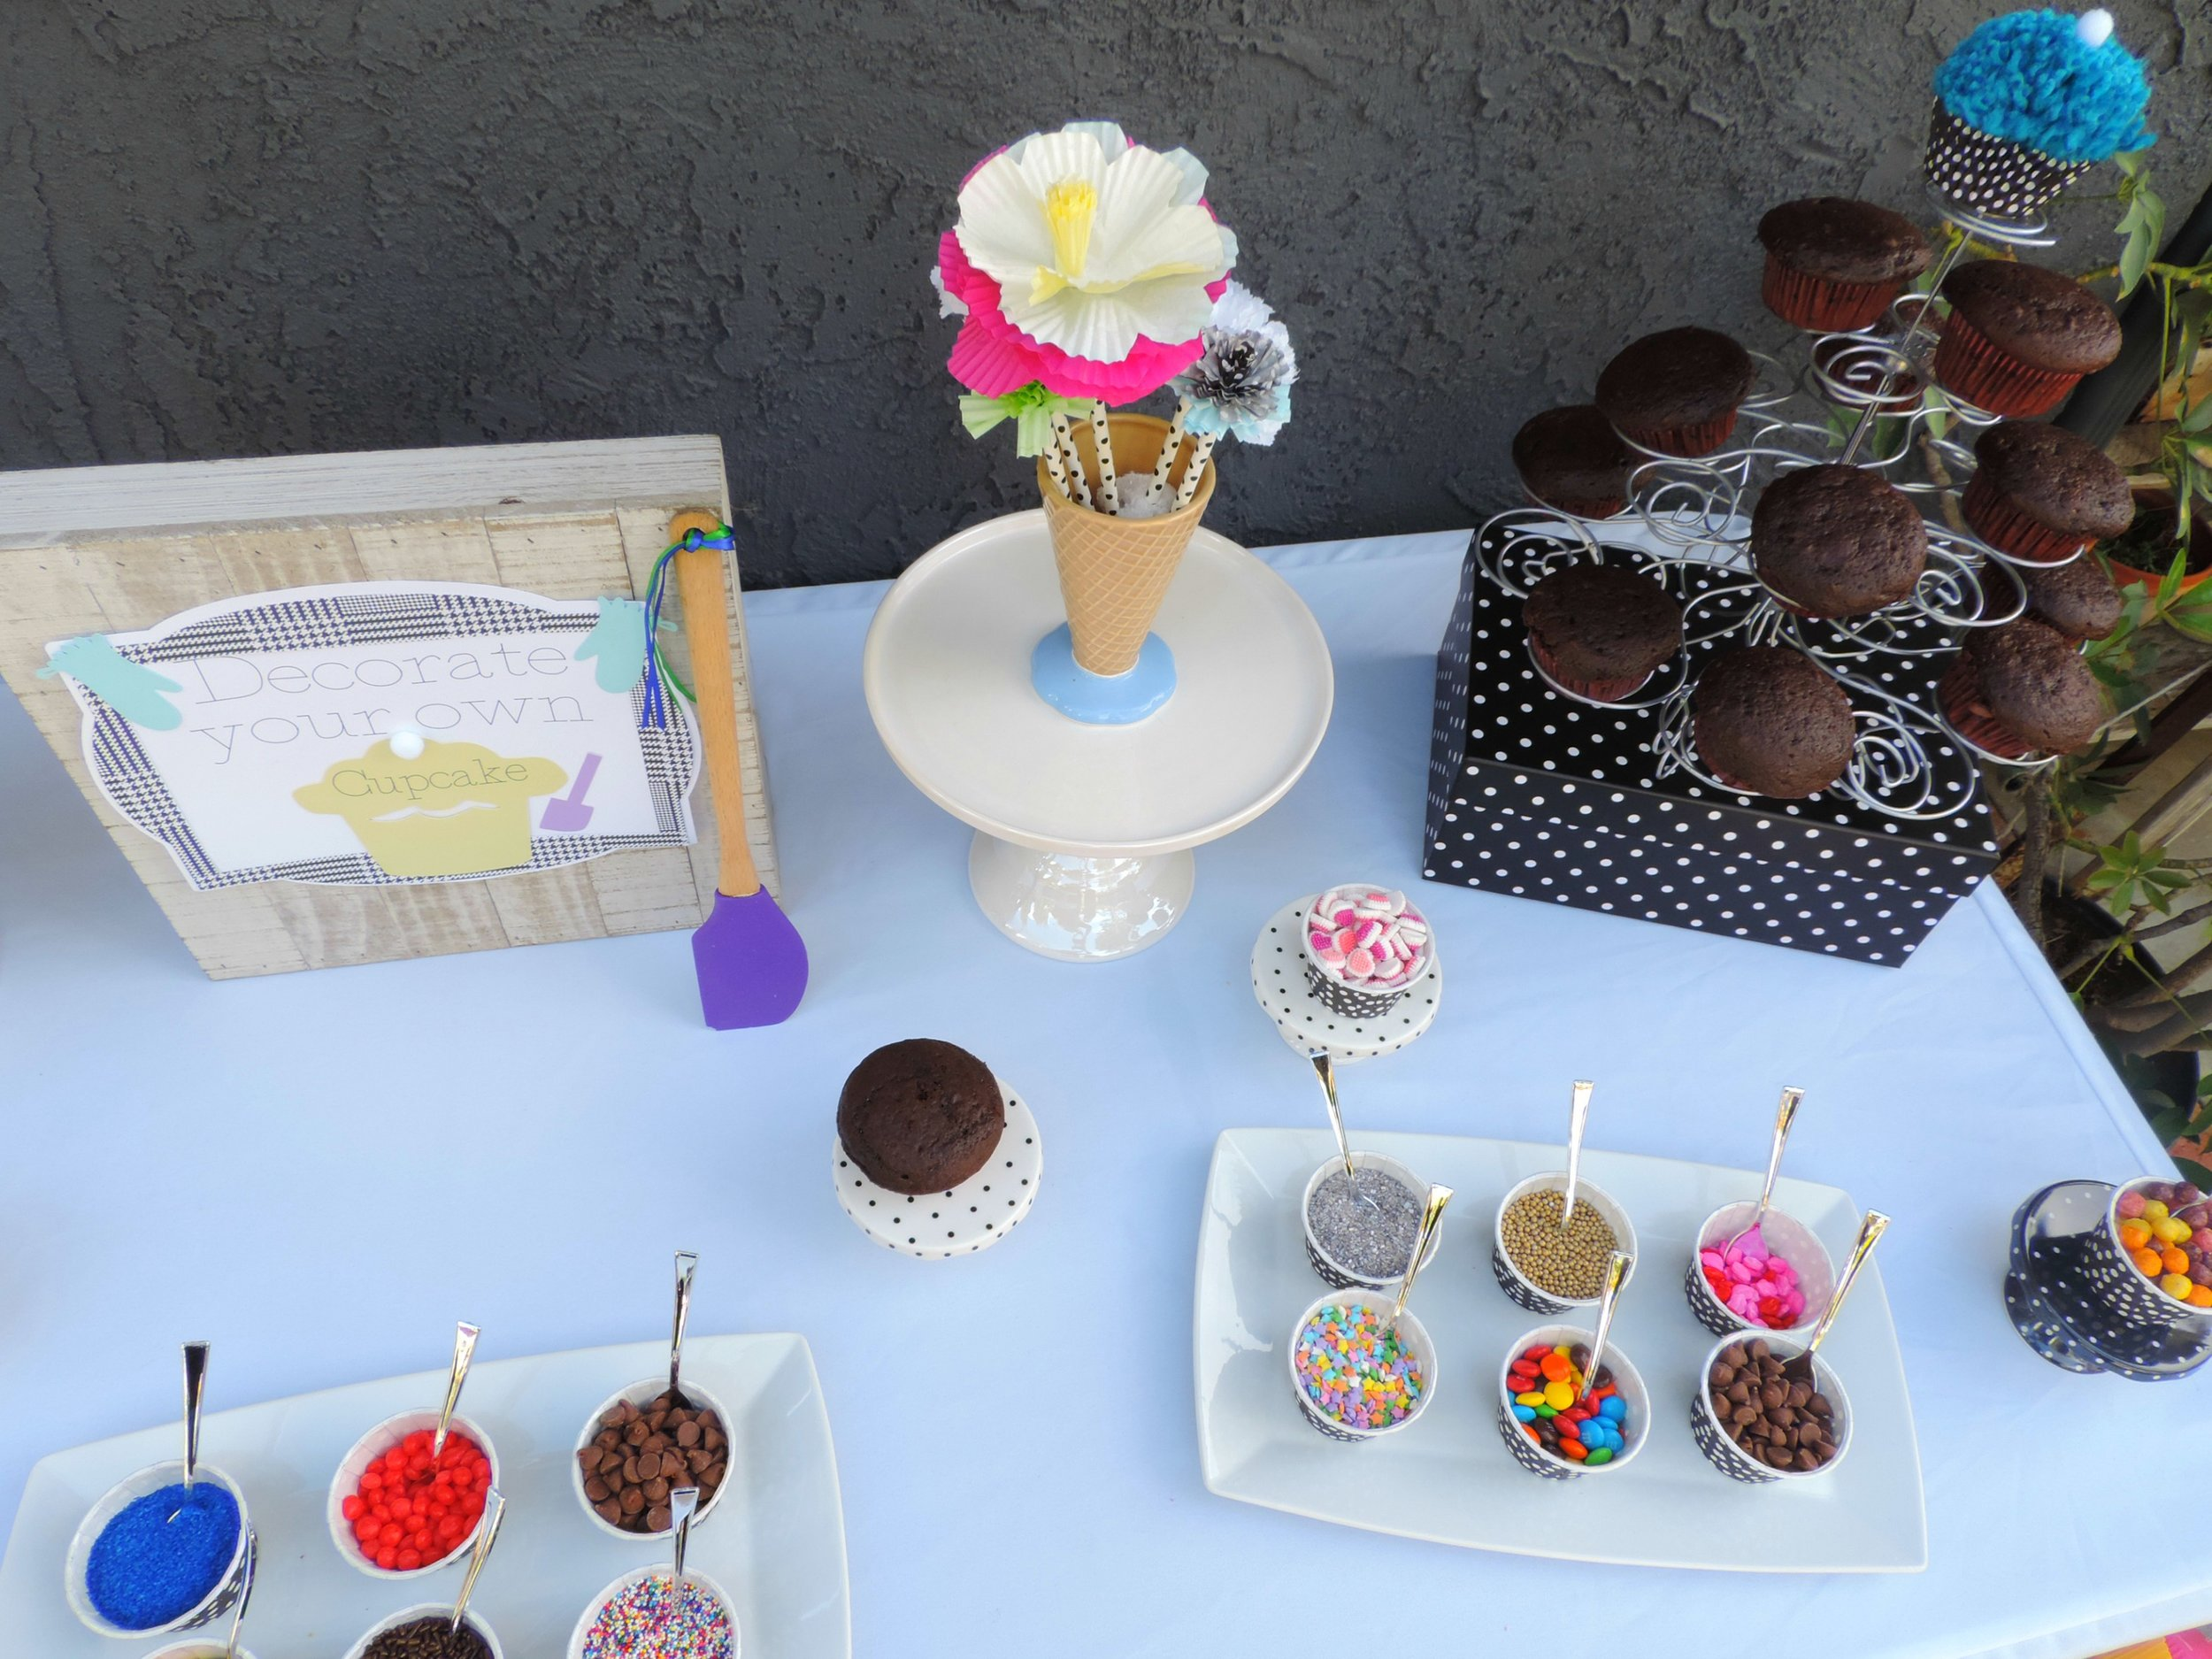 Decorate your own cupcake-cupcake wars party-cupcake wars birthday-cupcake decorating party-cupcake party ideas-www.SugarPartiesLA.com.jpg